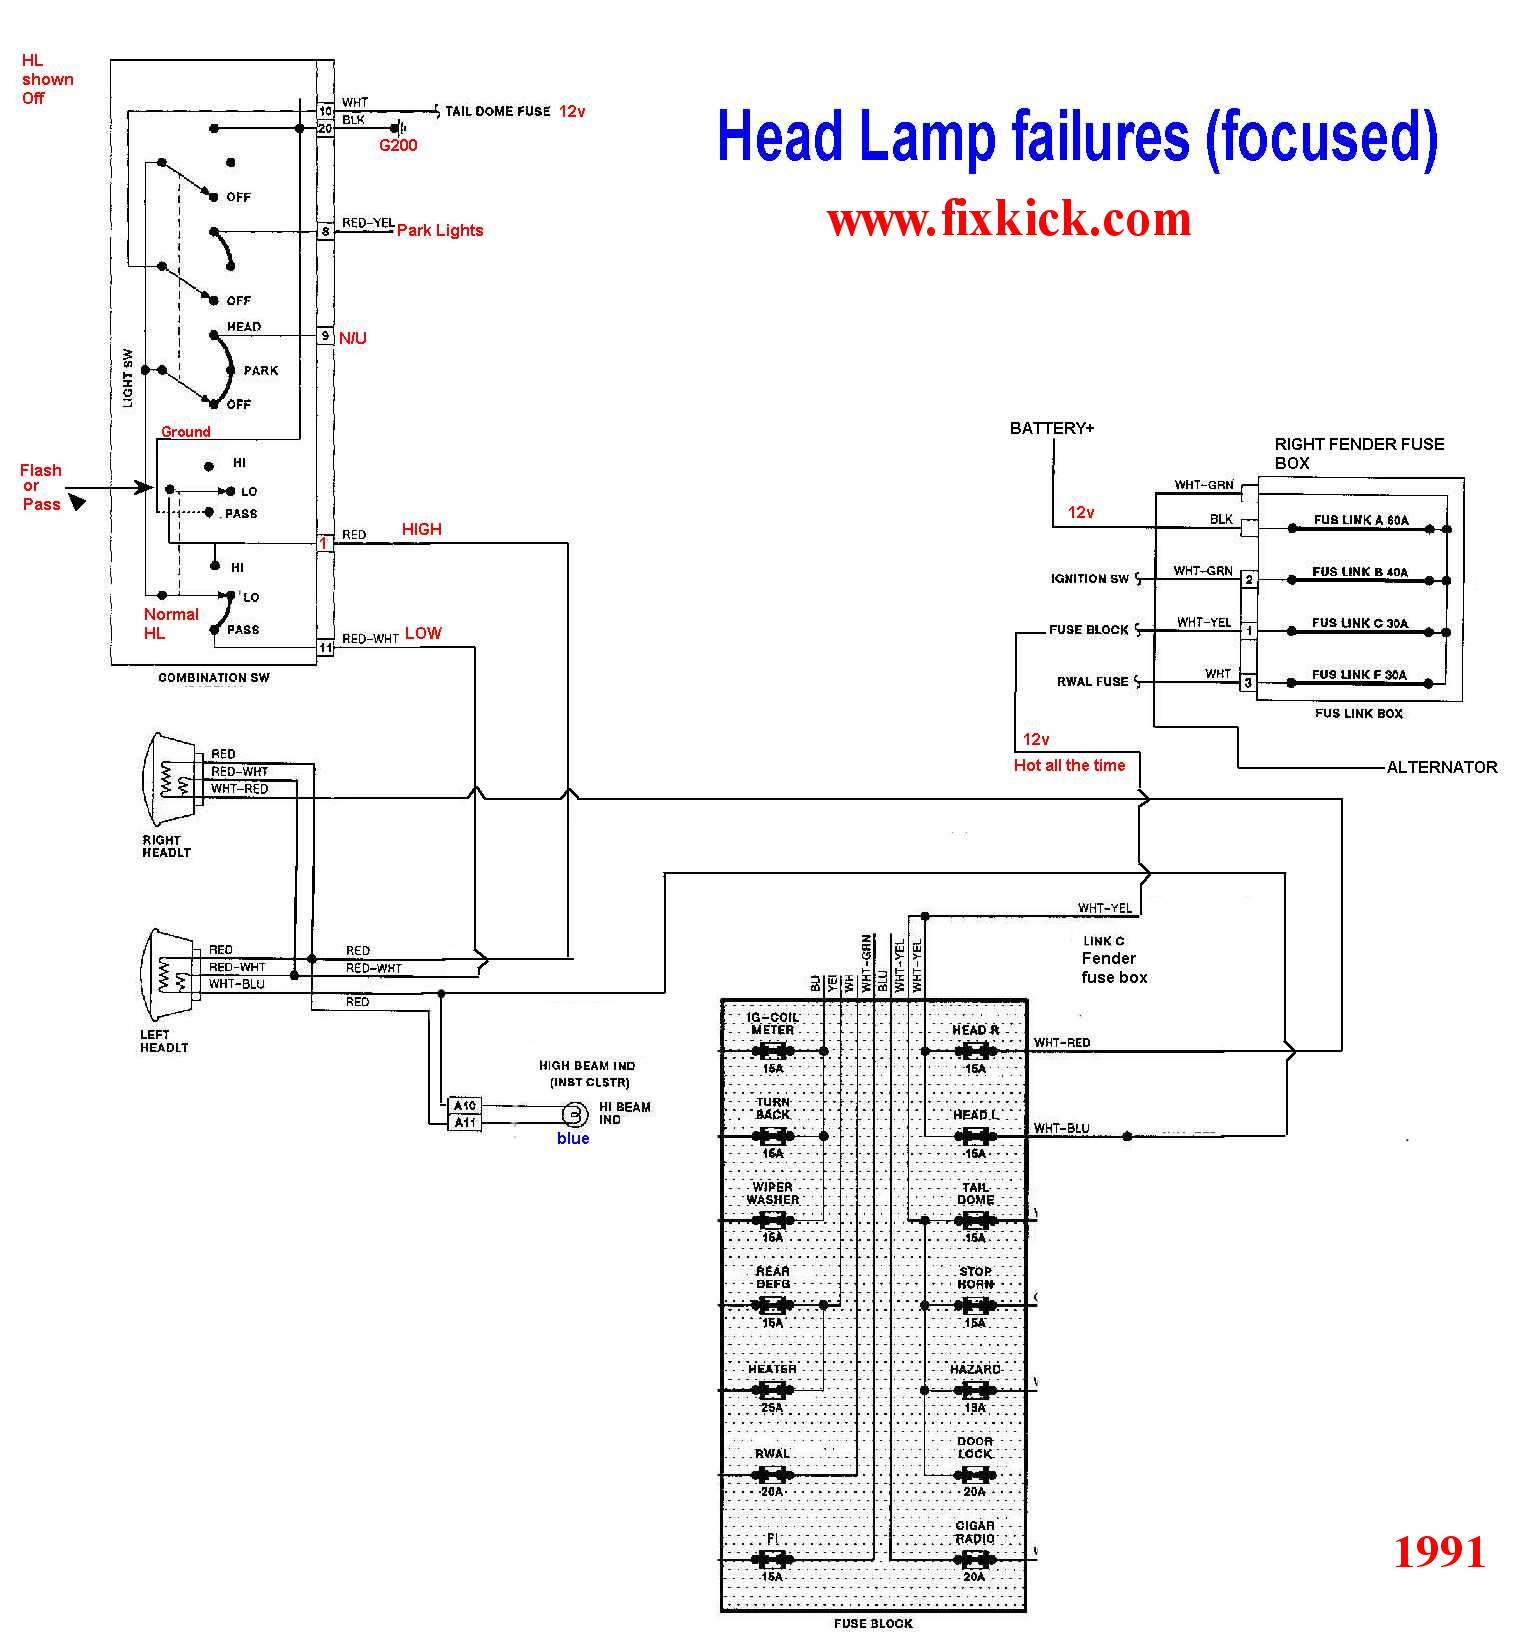 Radio Circuit System Wiring Diagram Of 1993 Chrysler Concorde